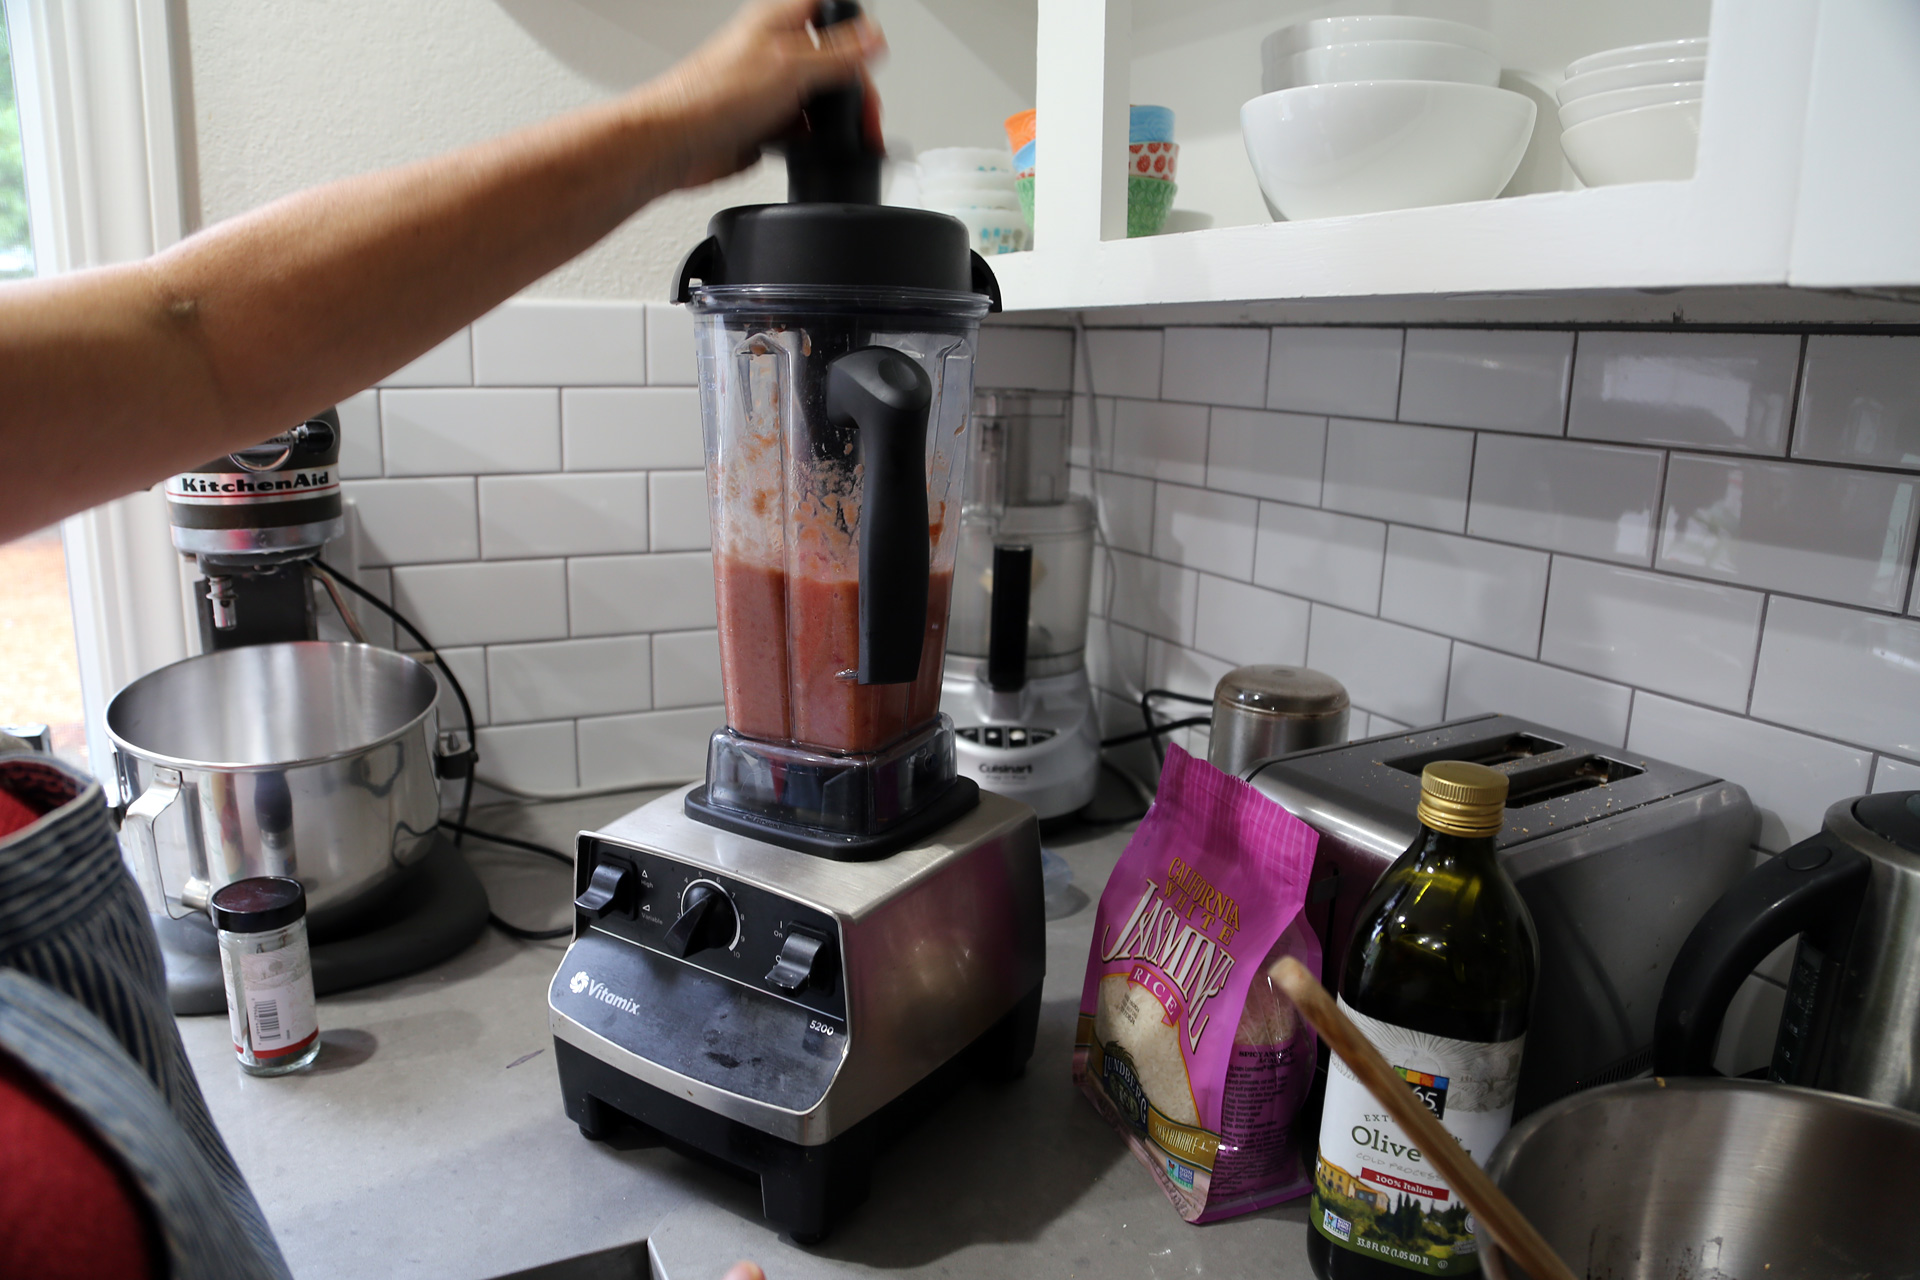 In a blender, puree the tomatoes with juices, onion, and garlic until smooth.